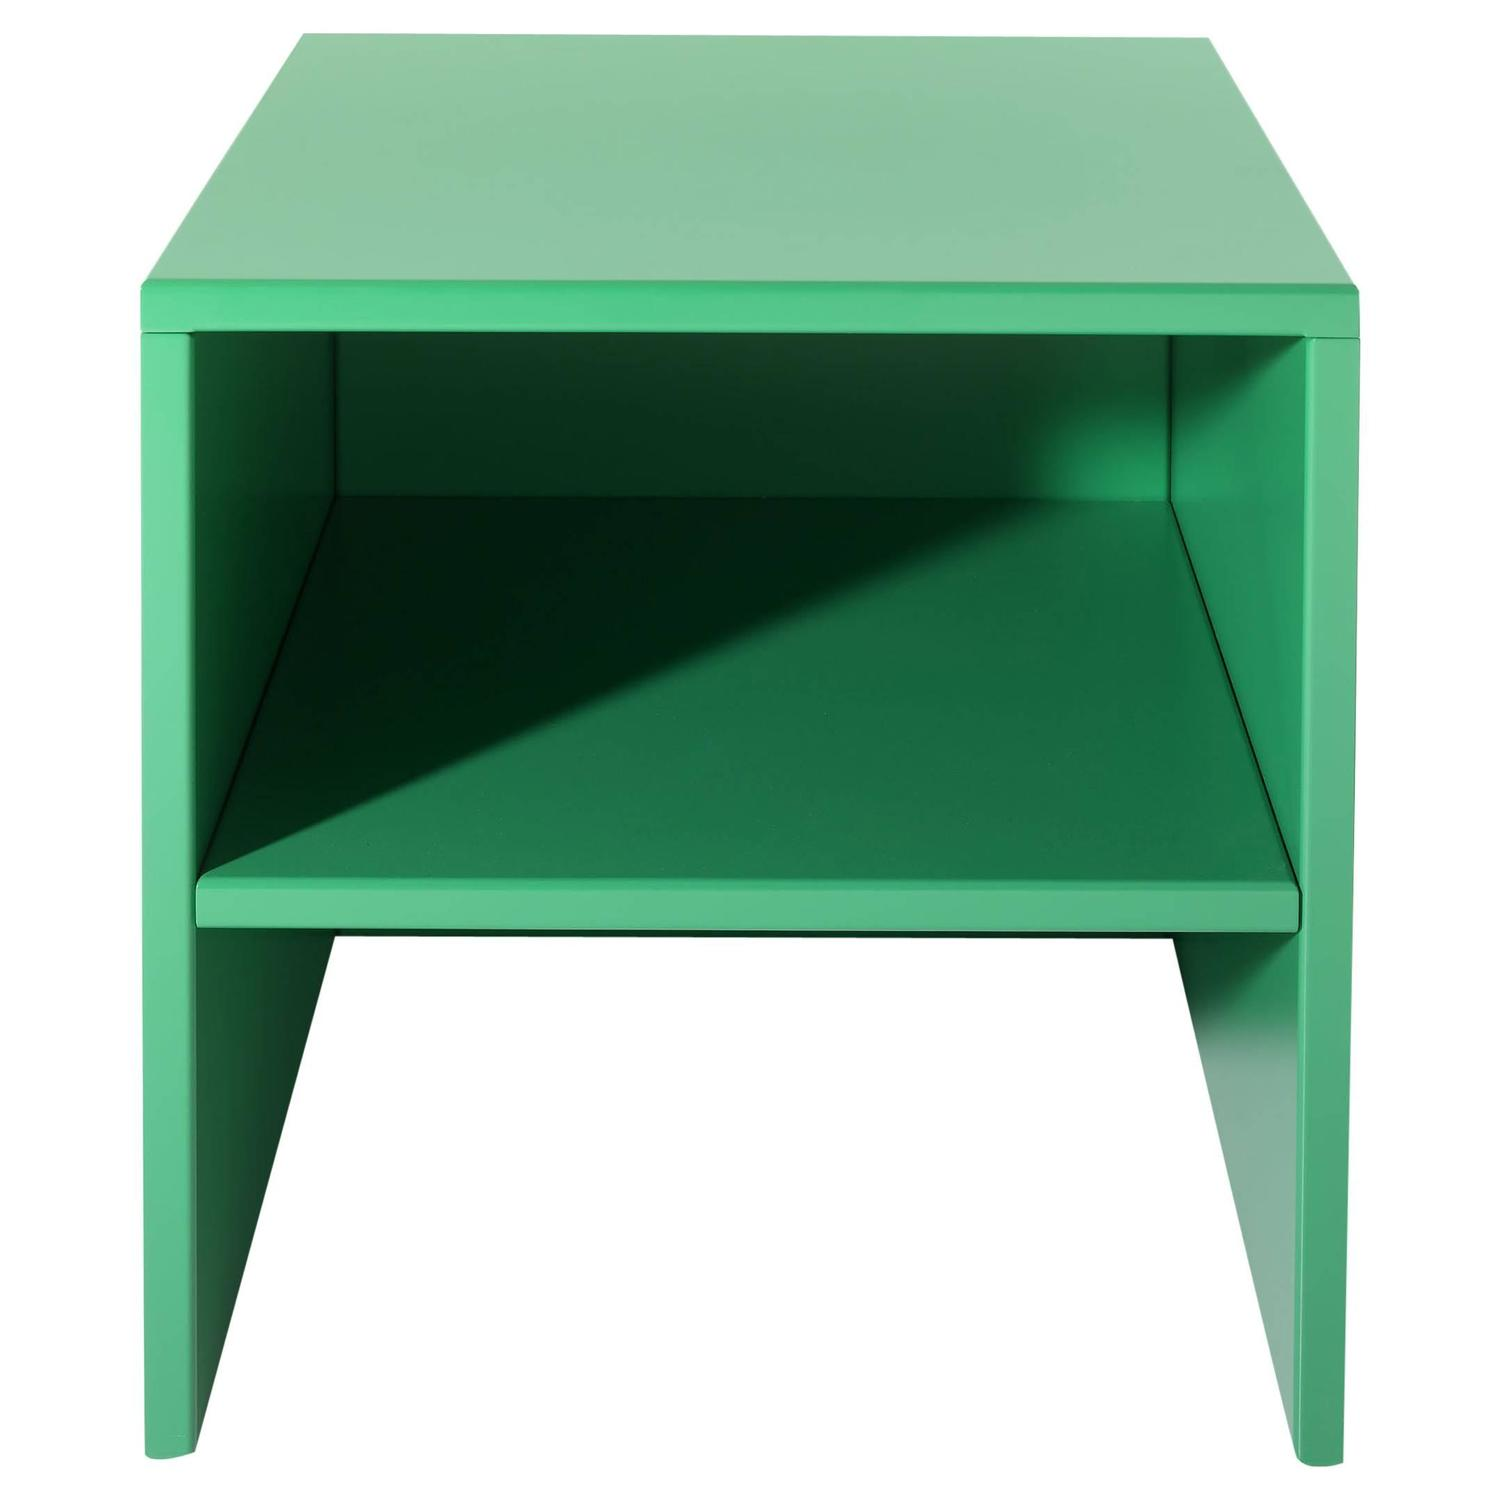 Elegant Stool Or Table By Donald Judd